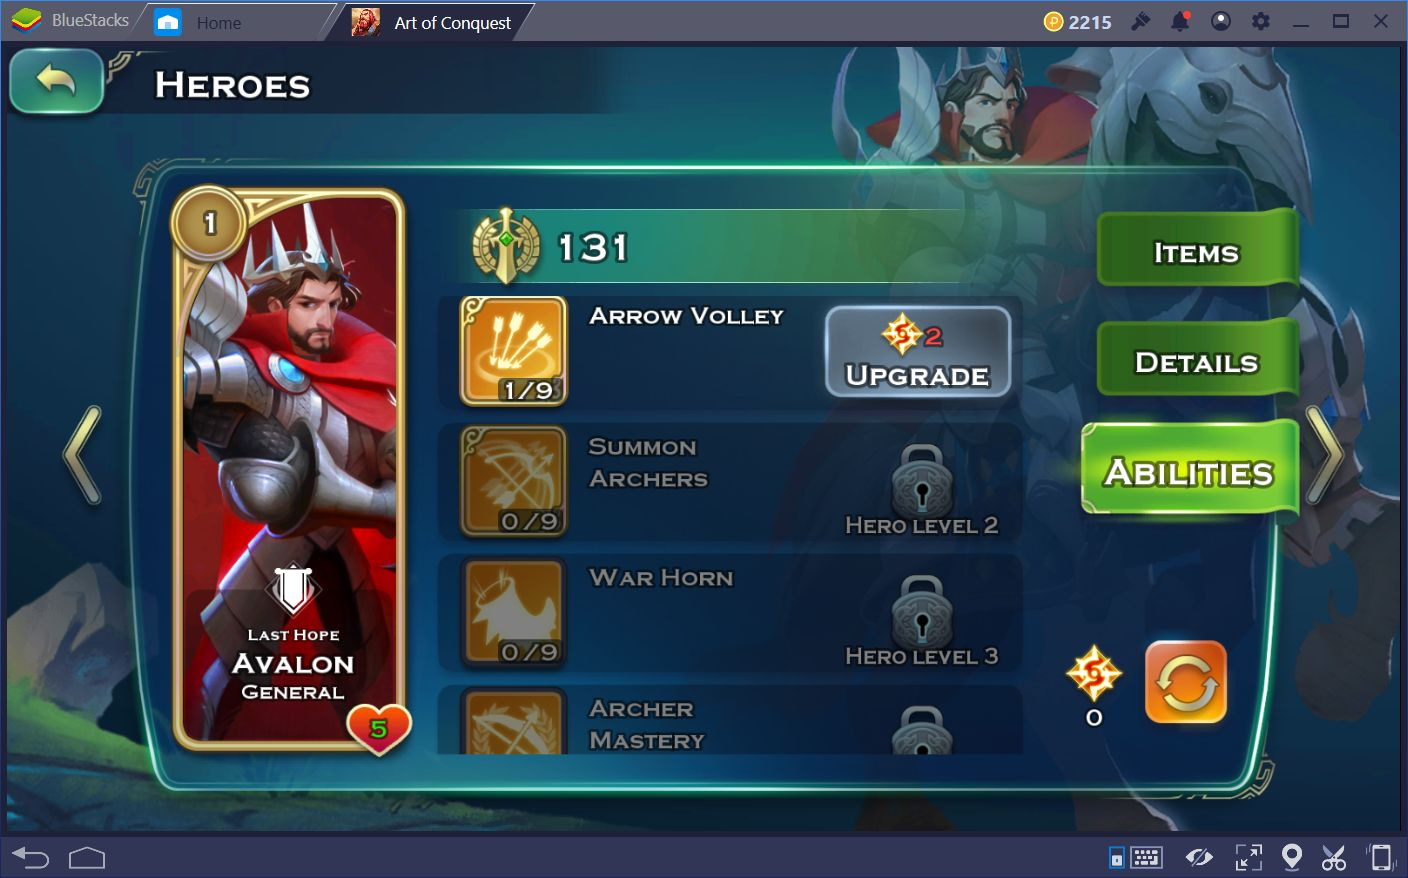 Free Heroes in Art of Conquest